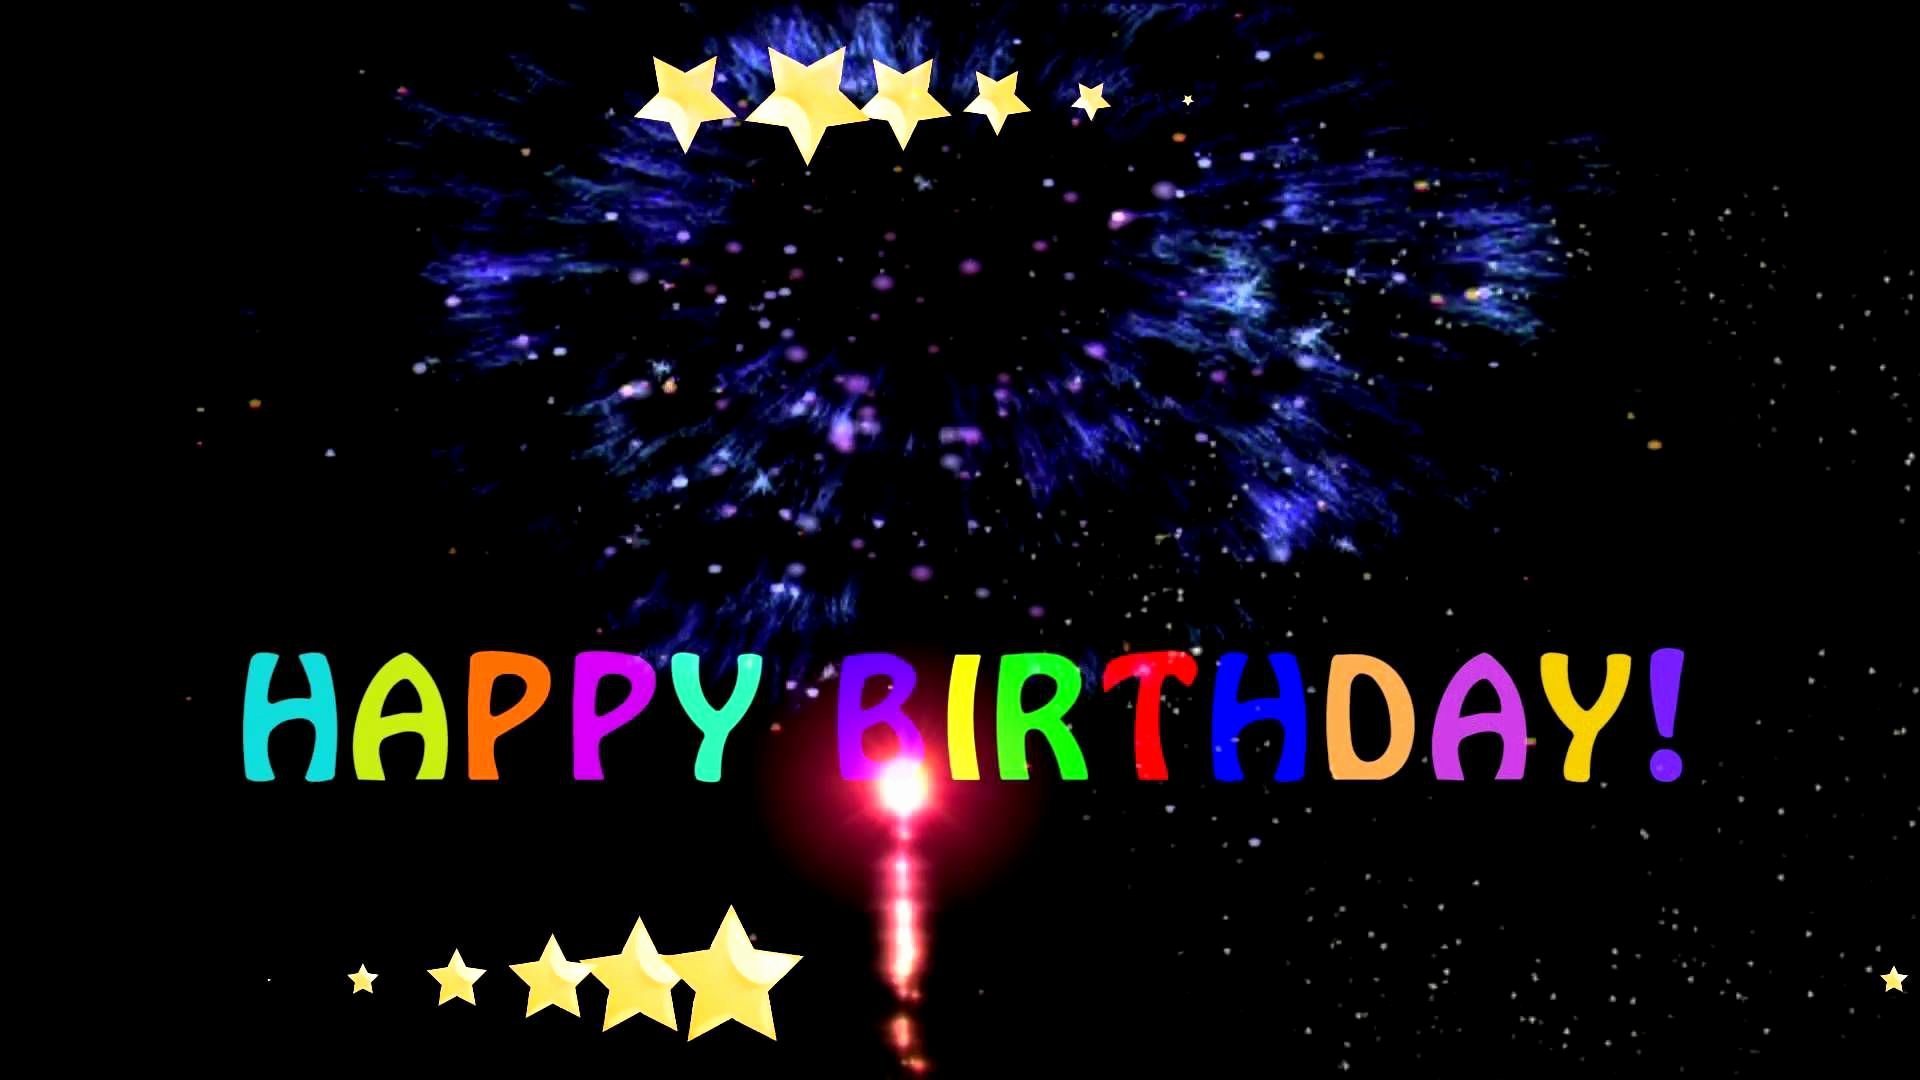 Free Downloads Happy Birthday Images Unique Happy Birthday Animated Free Download